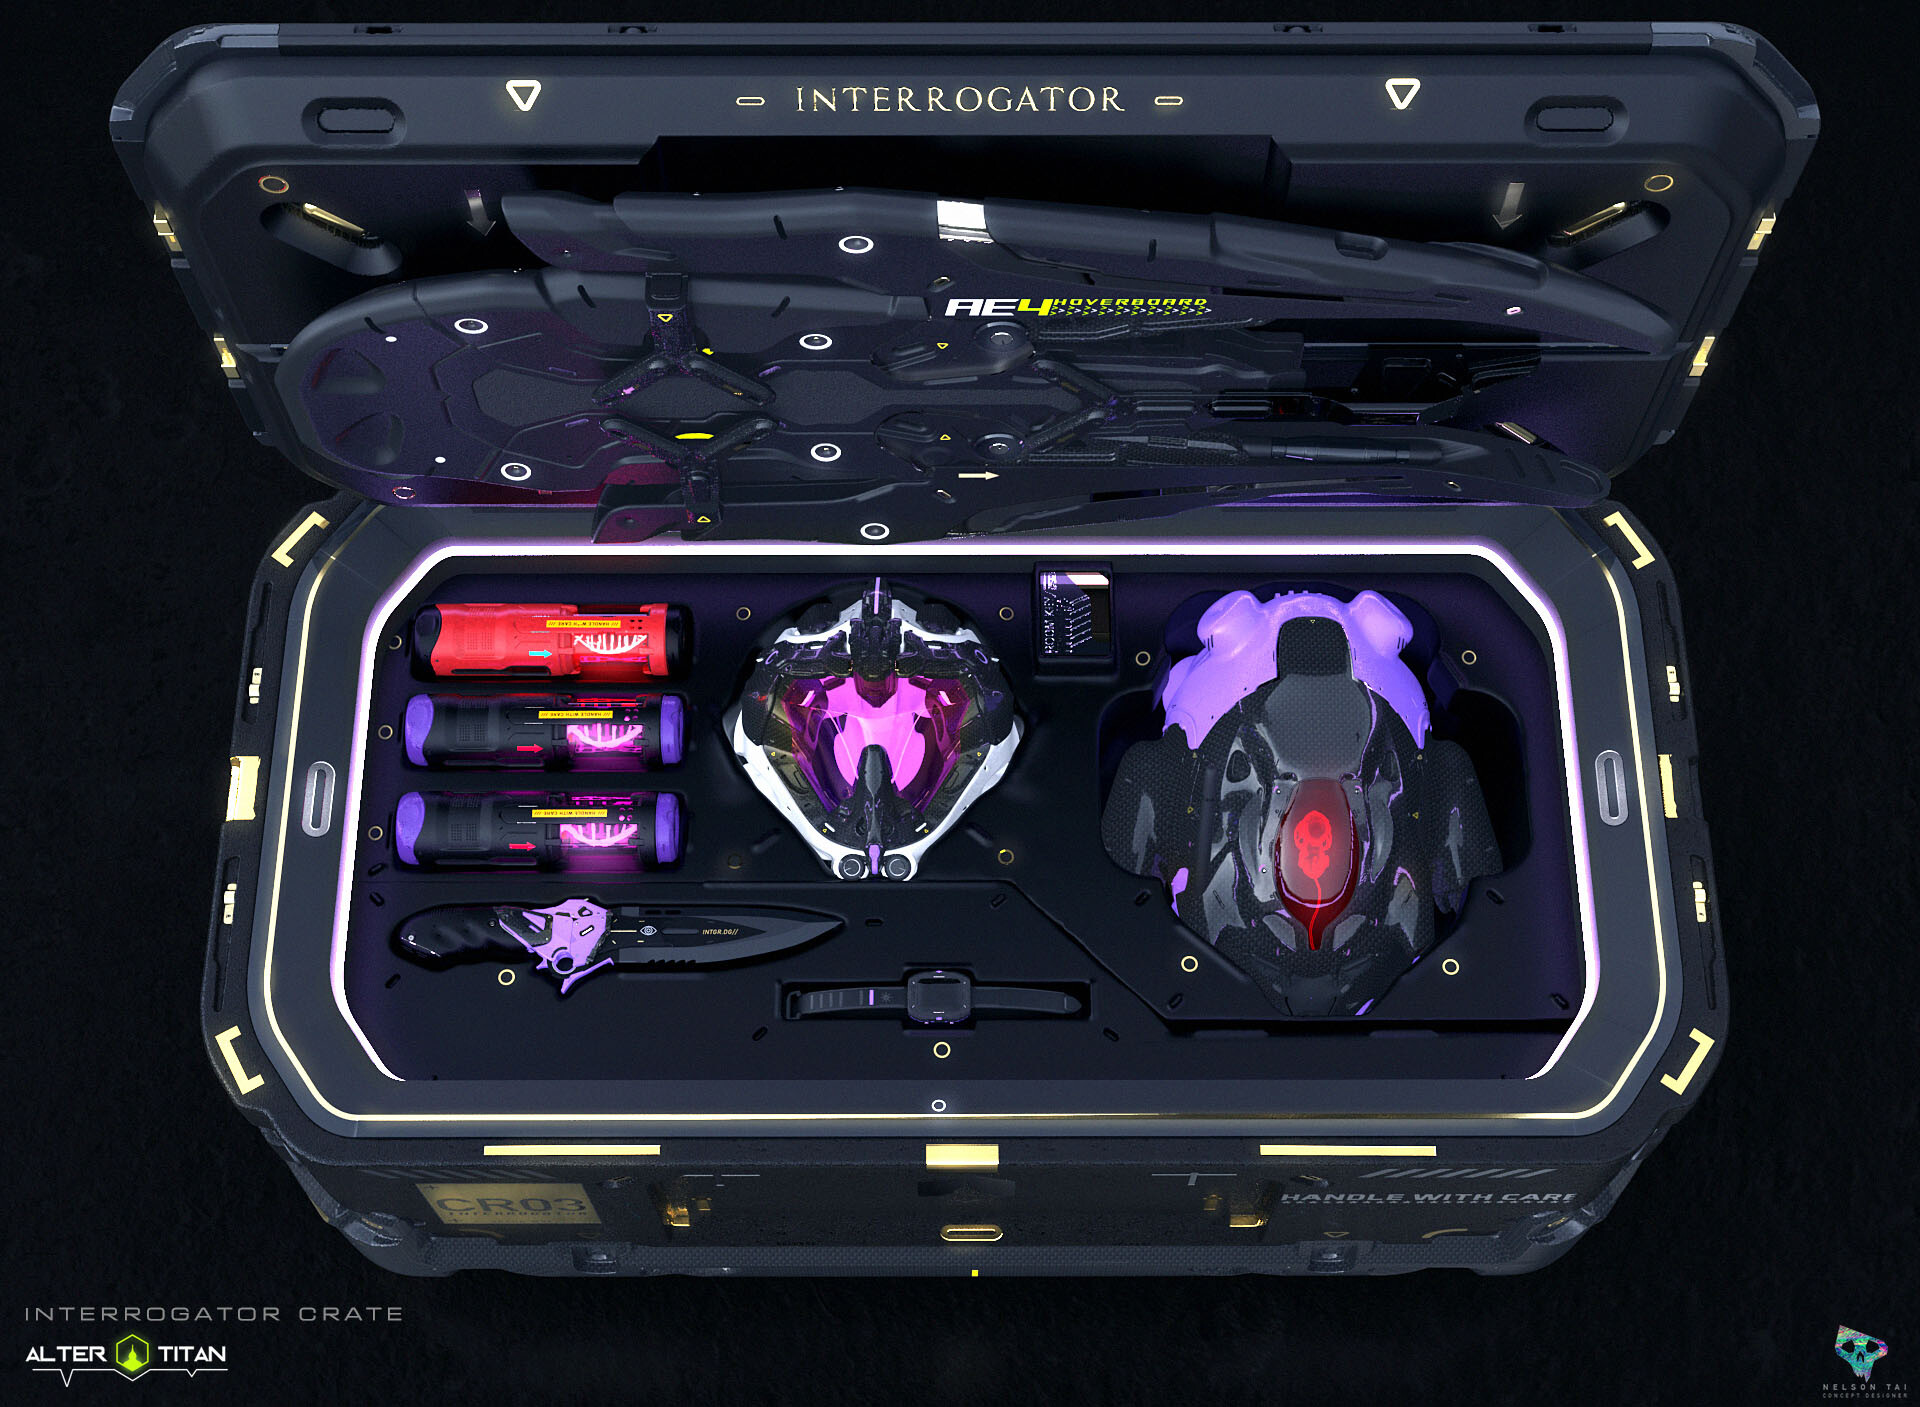 Interrogator's crate: comes with the highest grade for helmet, containers, dagger, link, droid, AND a hoverboard!